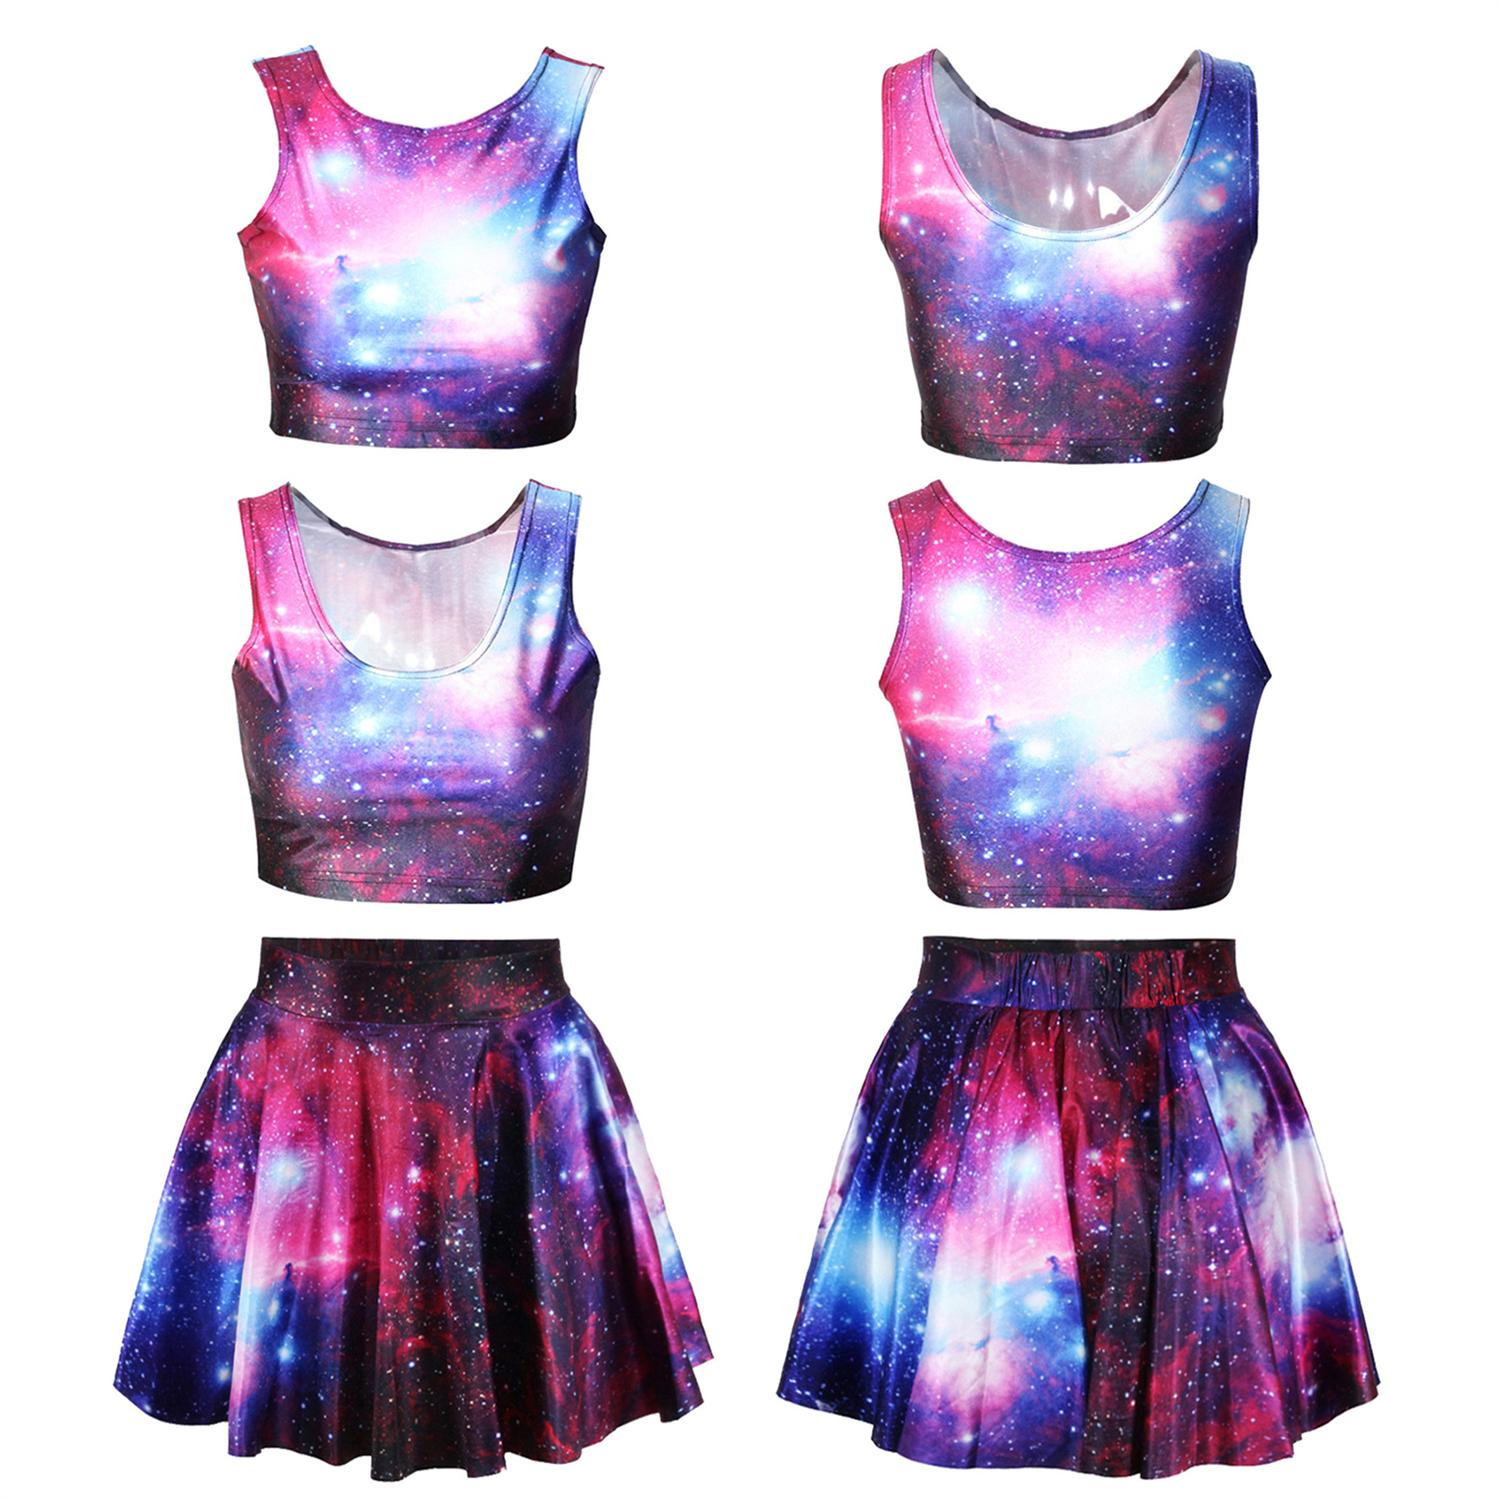 3D Galaxy Printed Crop Top And Mini Skirt Set Party Wear Clothing Women Summer Sexy Slim Skirt Vest Top Suit